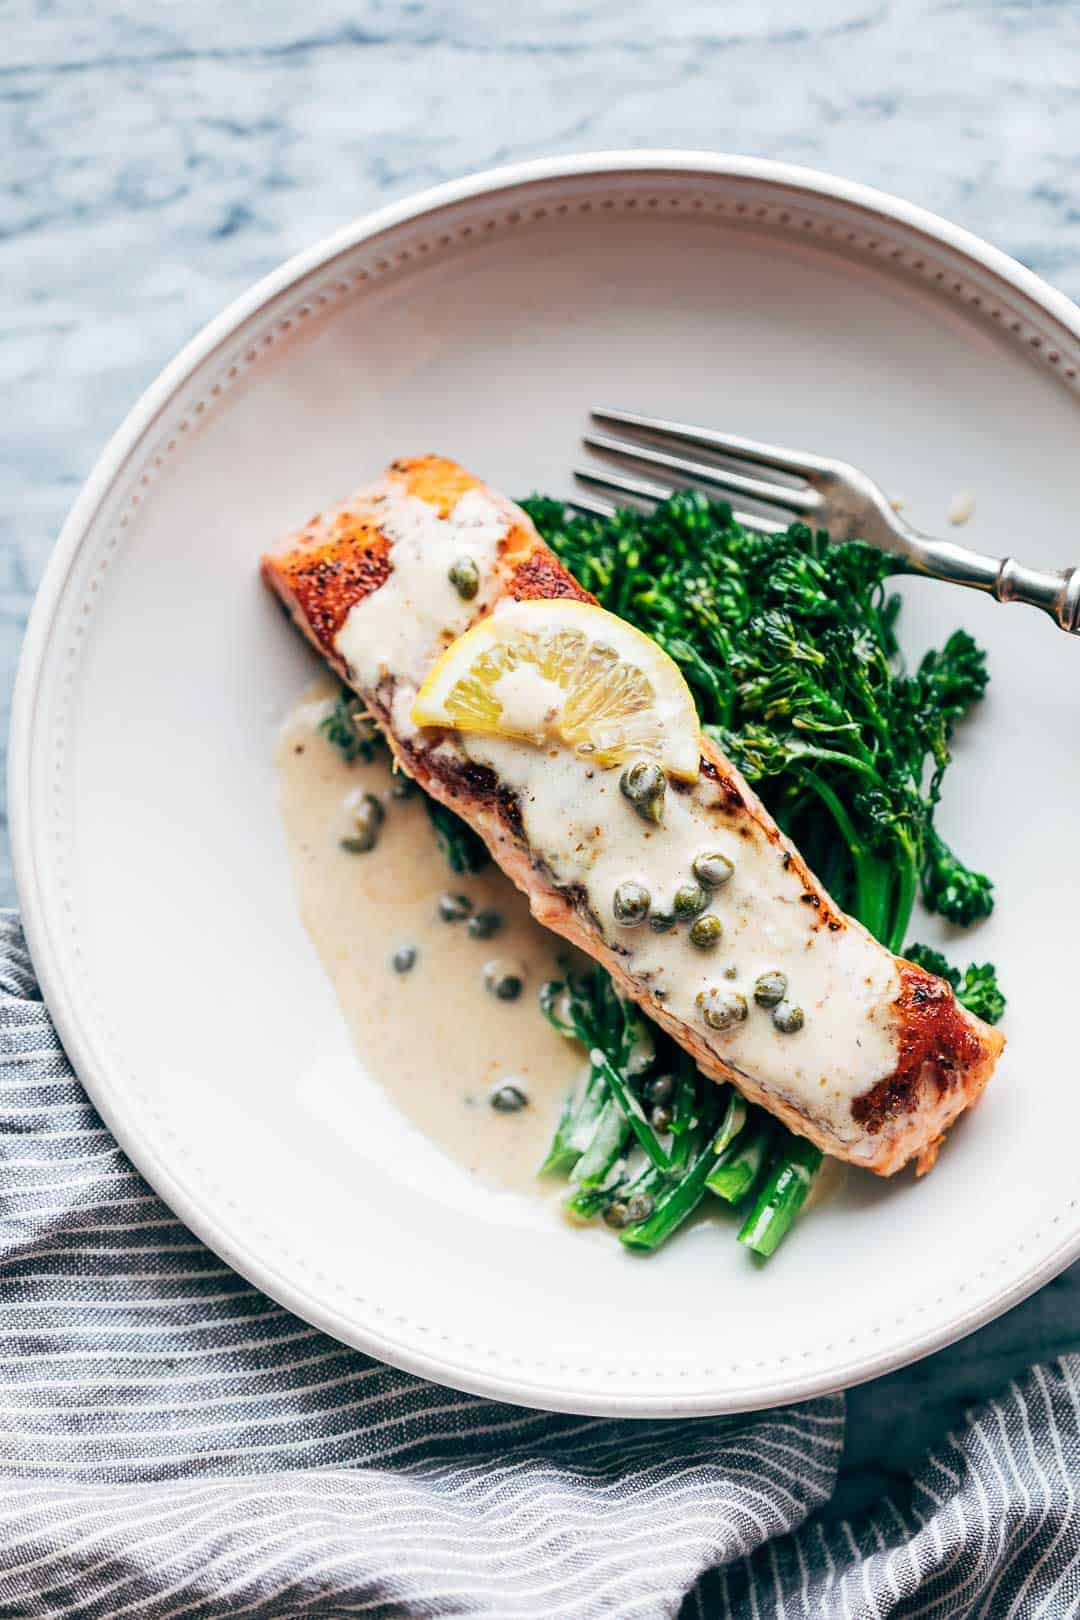 Creamy salmon piccata with lemon butter sauce served with steamed broccolini in a white bowl